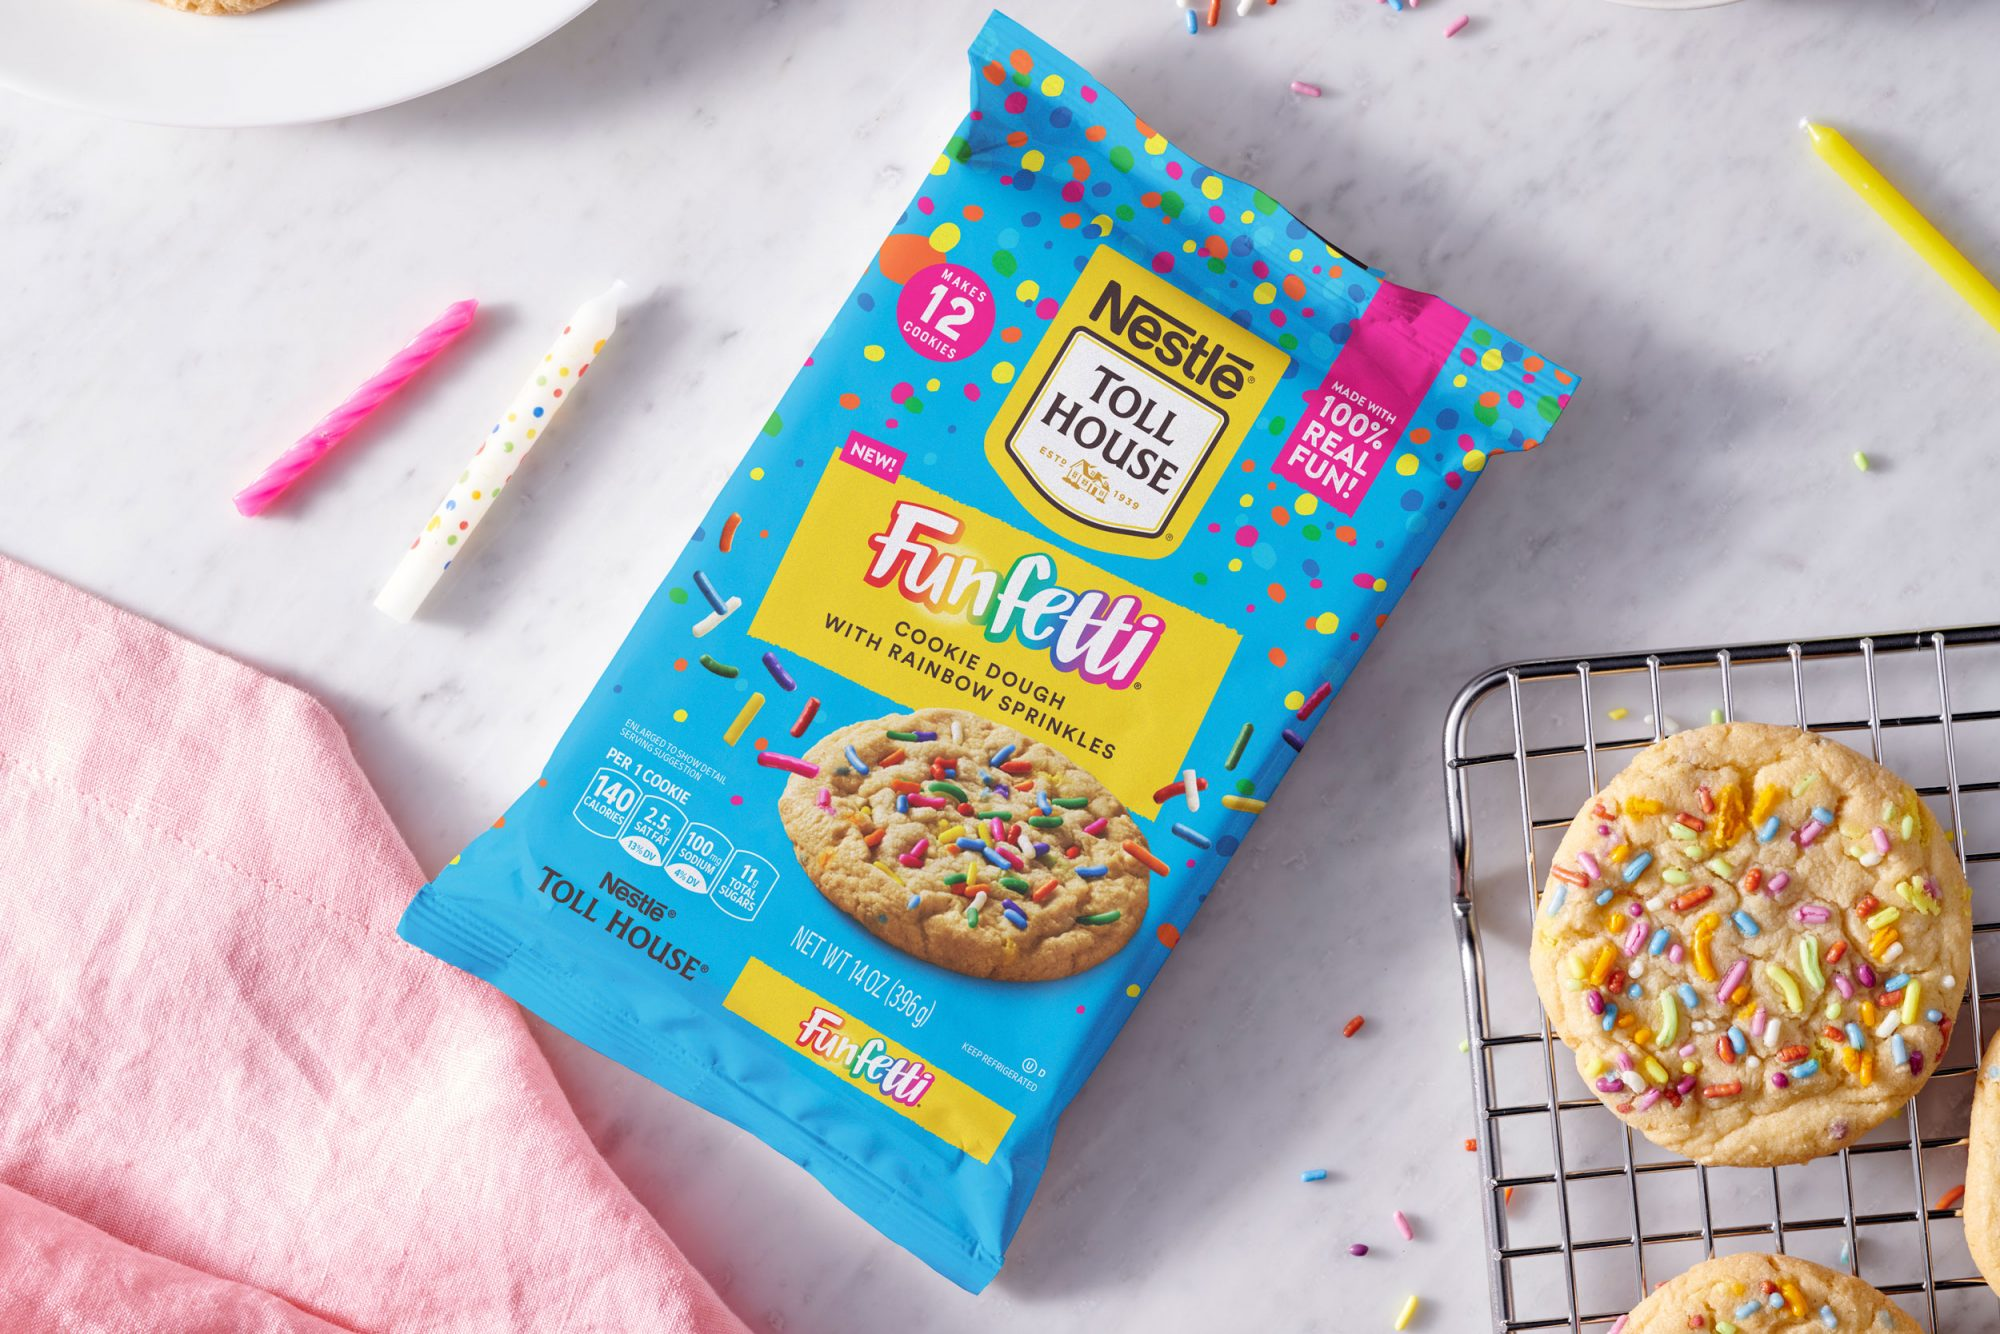 NESTL & EACUTE;  TOLL HOUSE FUNFETTI COOKIE DOUGH WITH RAINBOW SPRINKLES